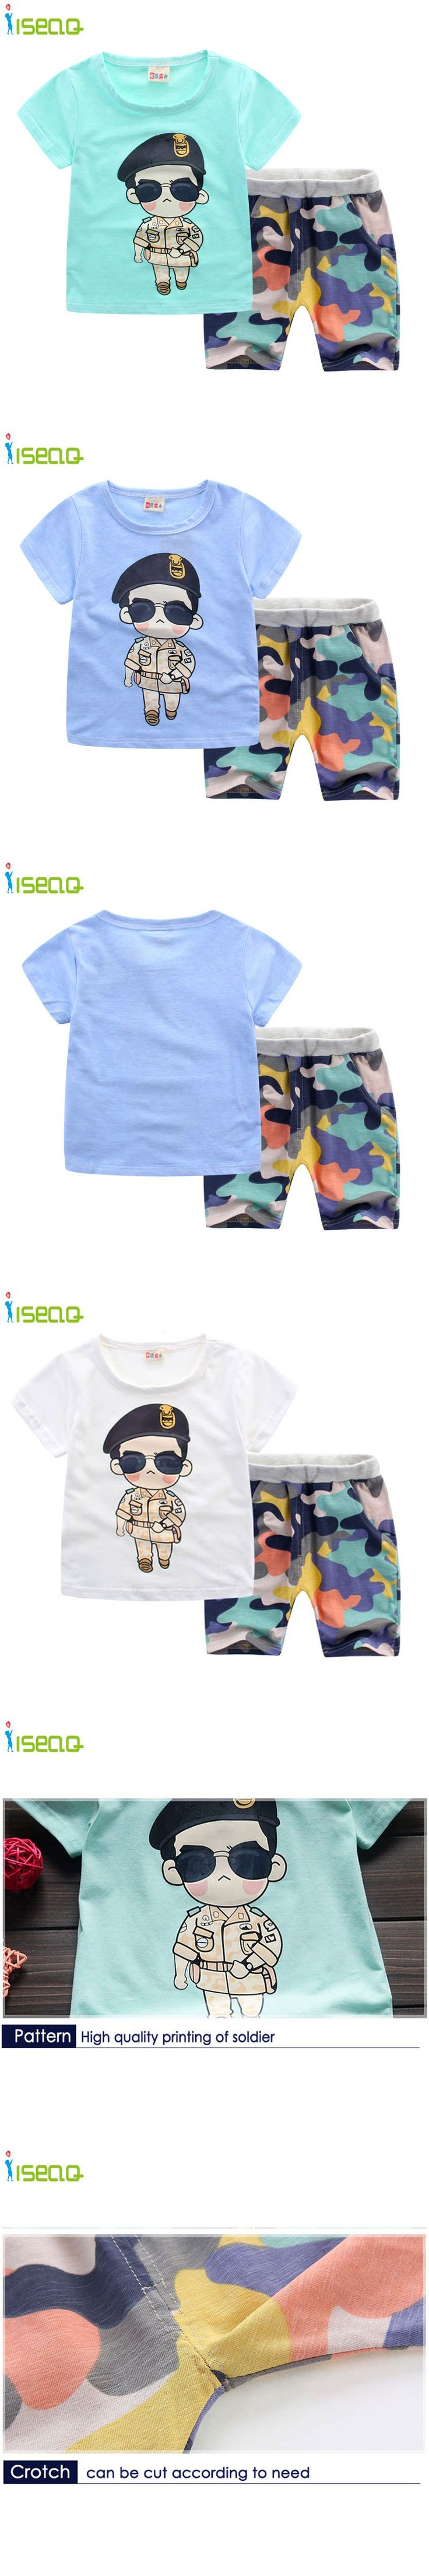 Children boy clothes Branded camouflage clothing Baby Boys Toddler Suits Summer Kids Clothes Clothing Sets Short Sleeve Boys